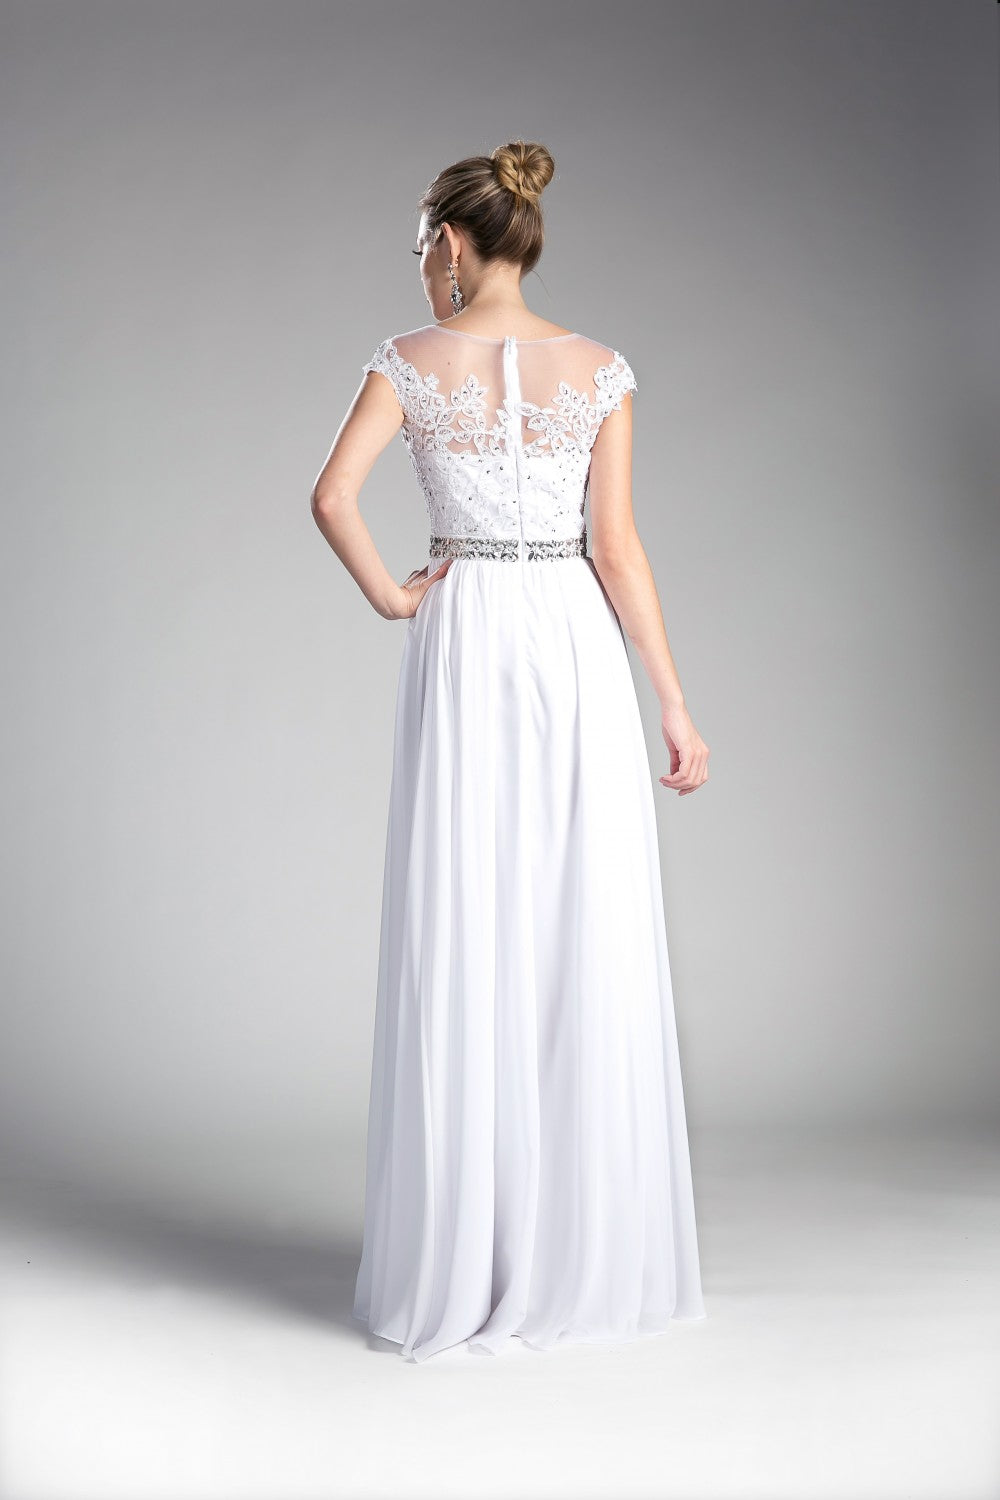 A-Line Chiffon Gown With Beaded Lace Top And Closed Back